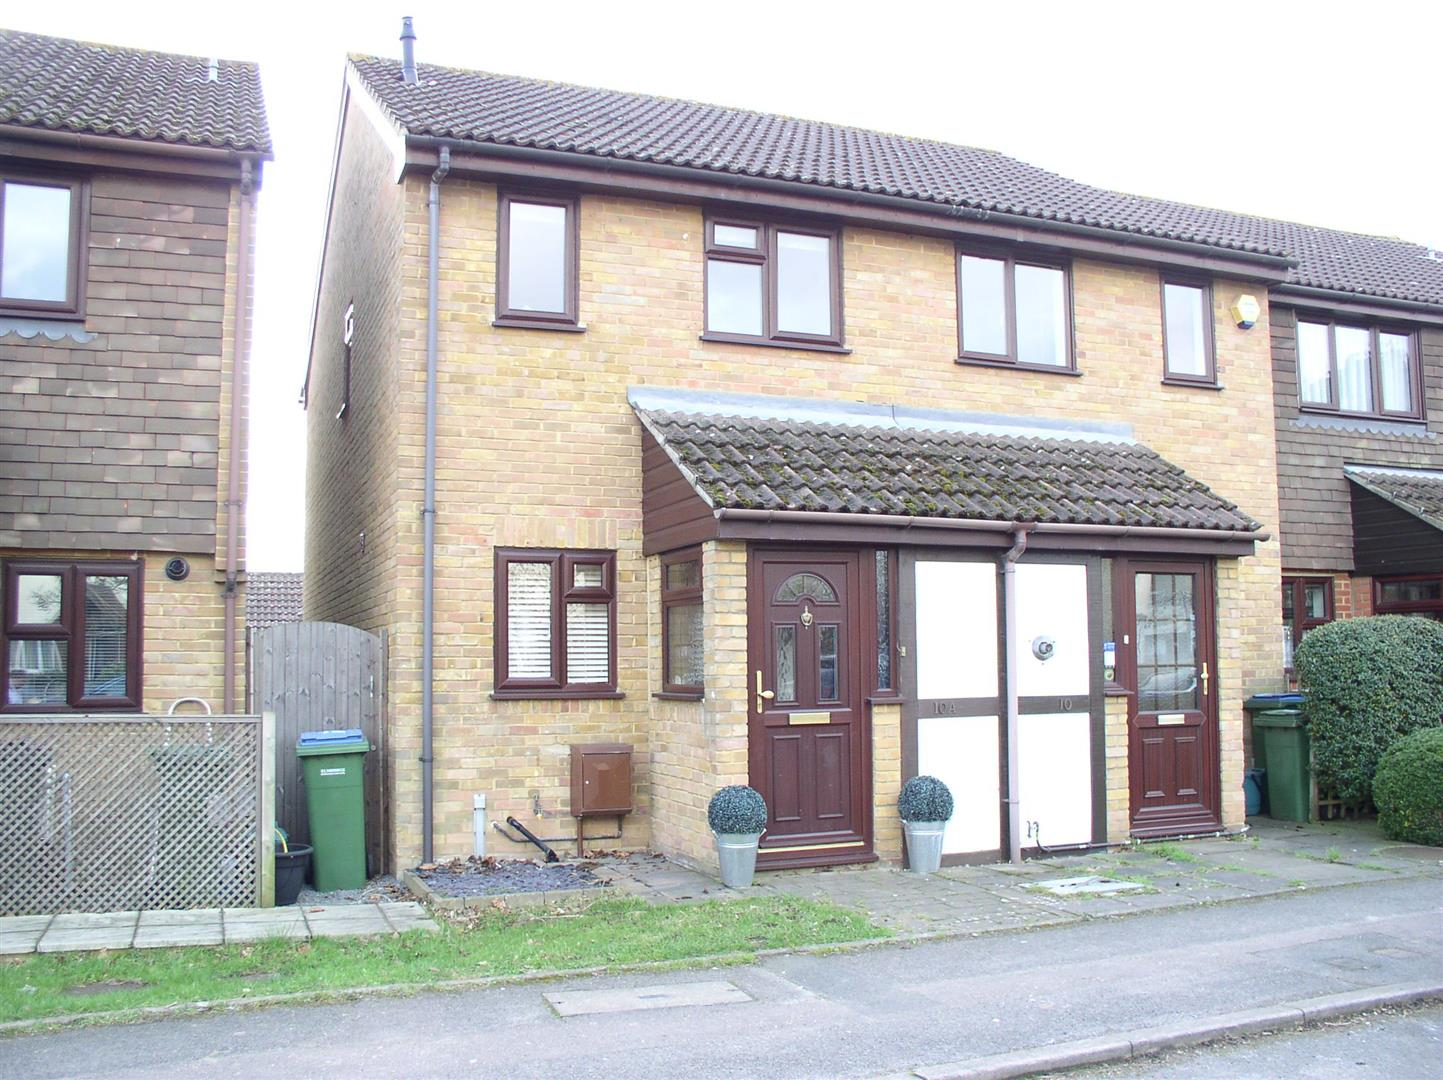 2 Bedrooms End Of Terrace House for sale in Thrupps Lane, Hersham, Walton-On-Thames